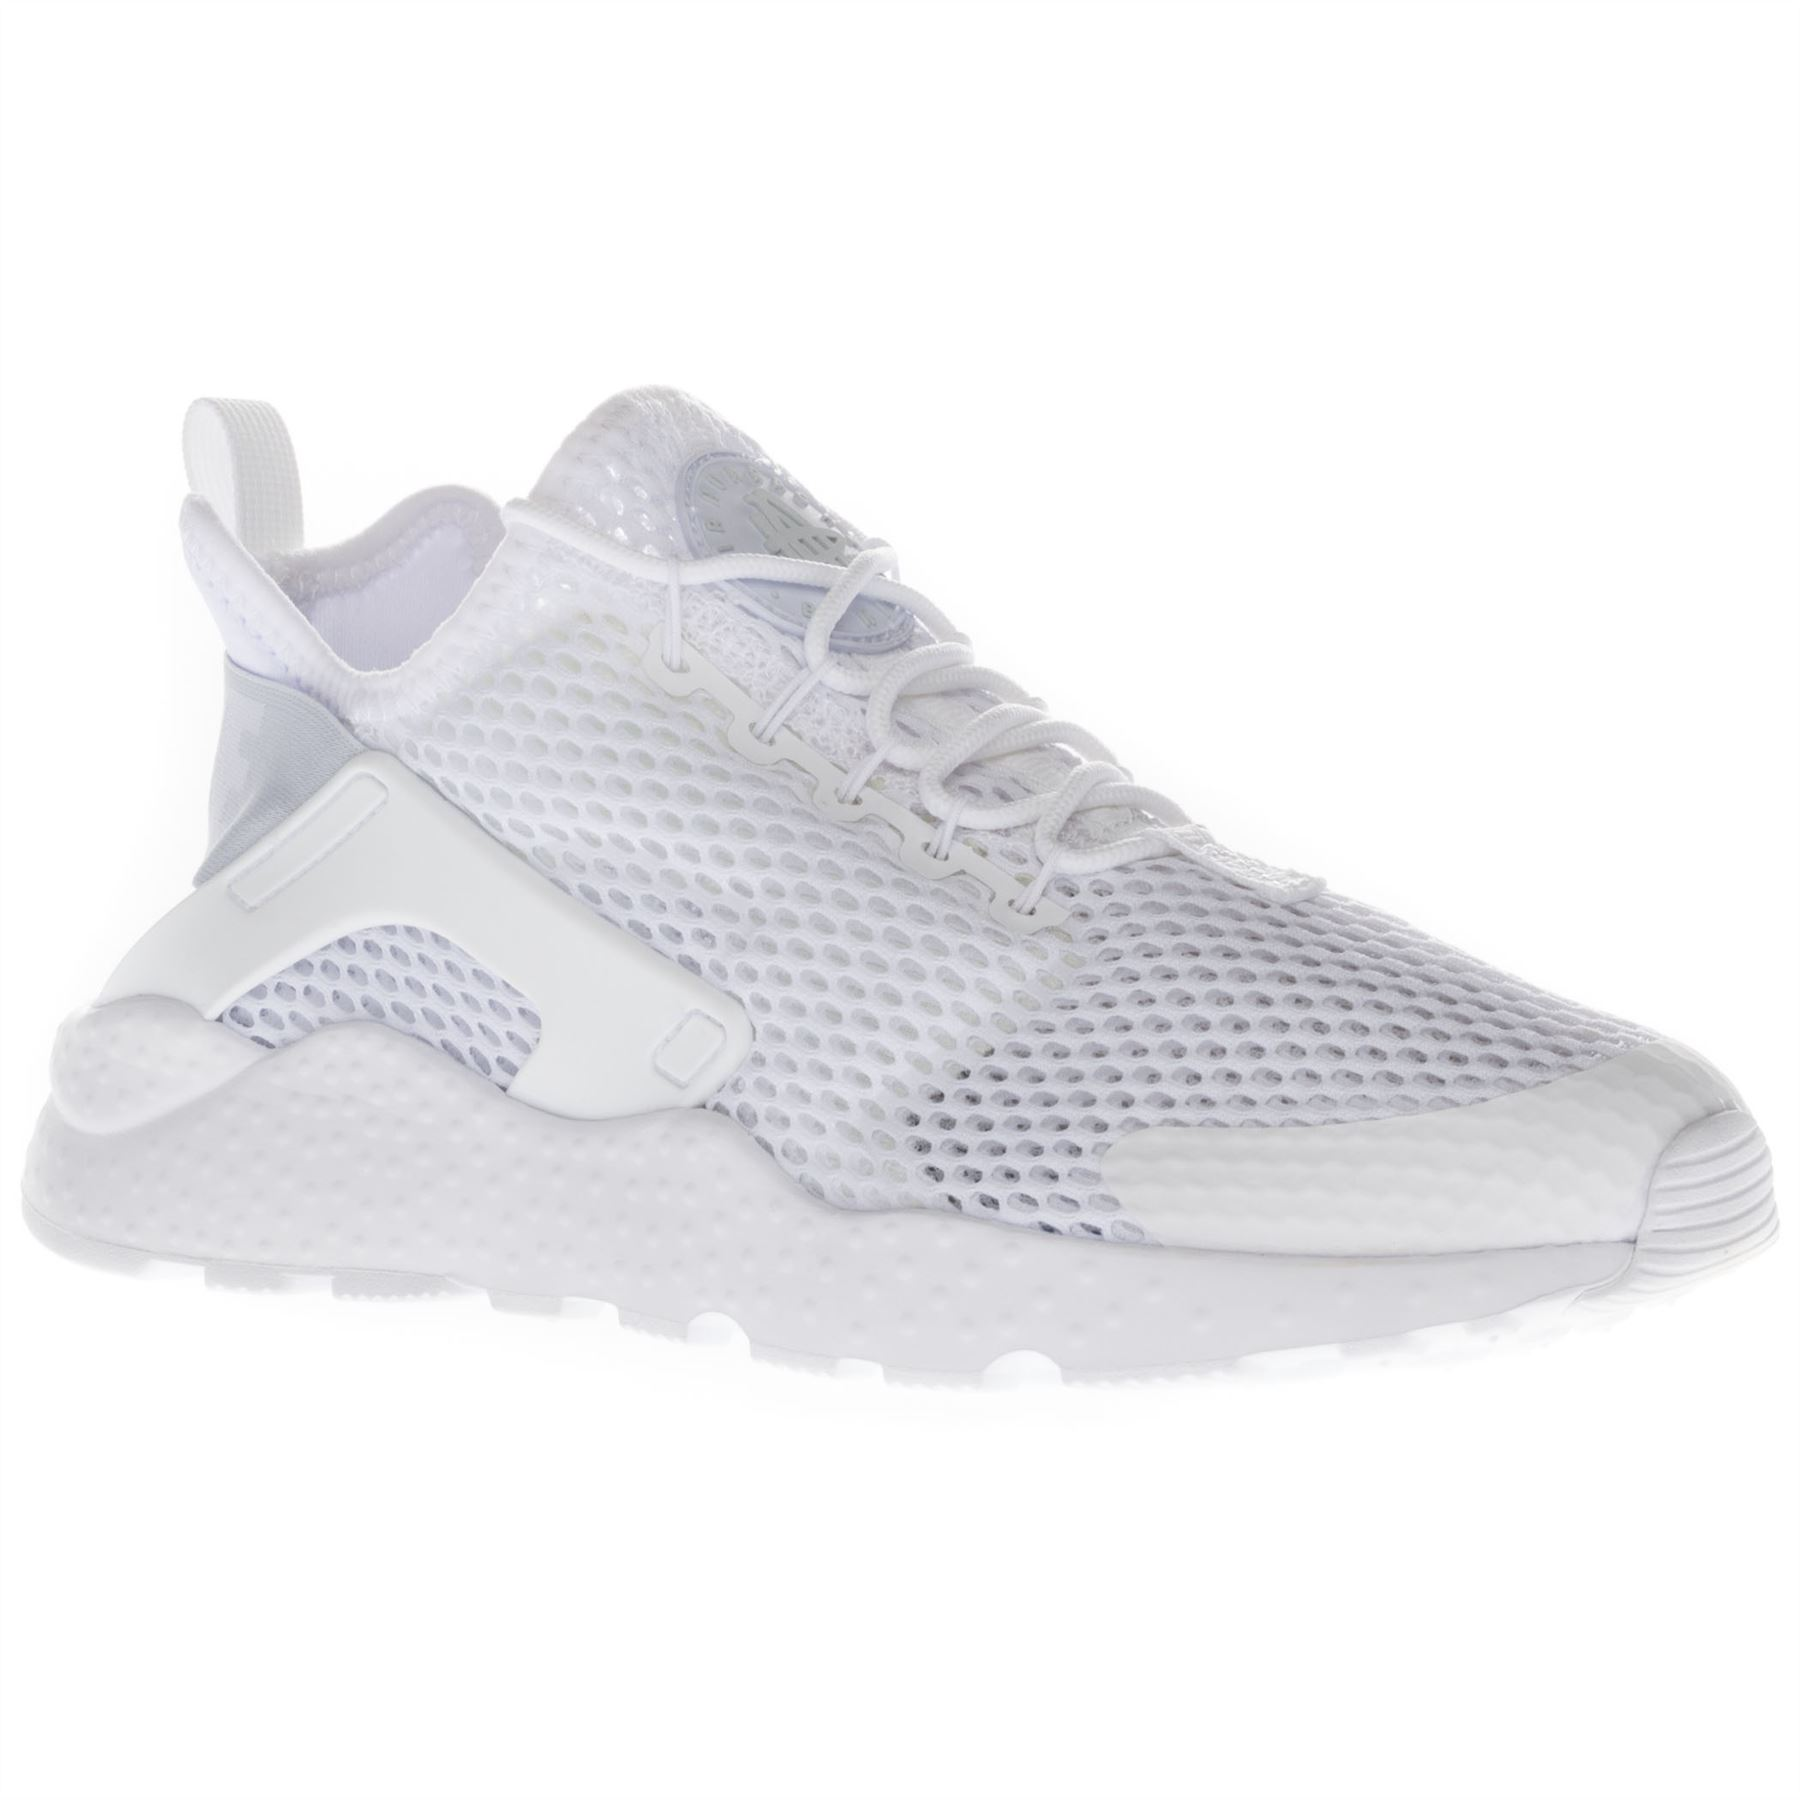 ... clearance nike women 039 s air huarache run ultra 8f56c 71a34 ... 546331699